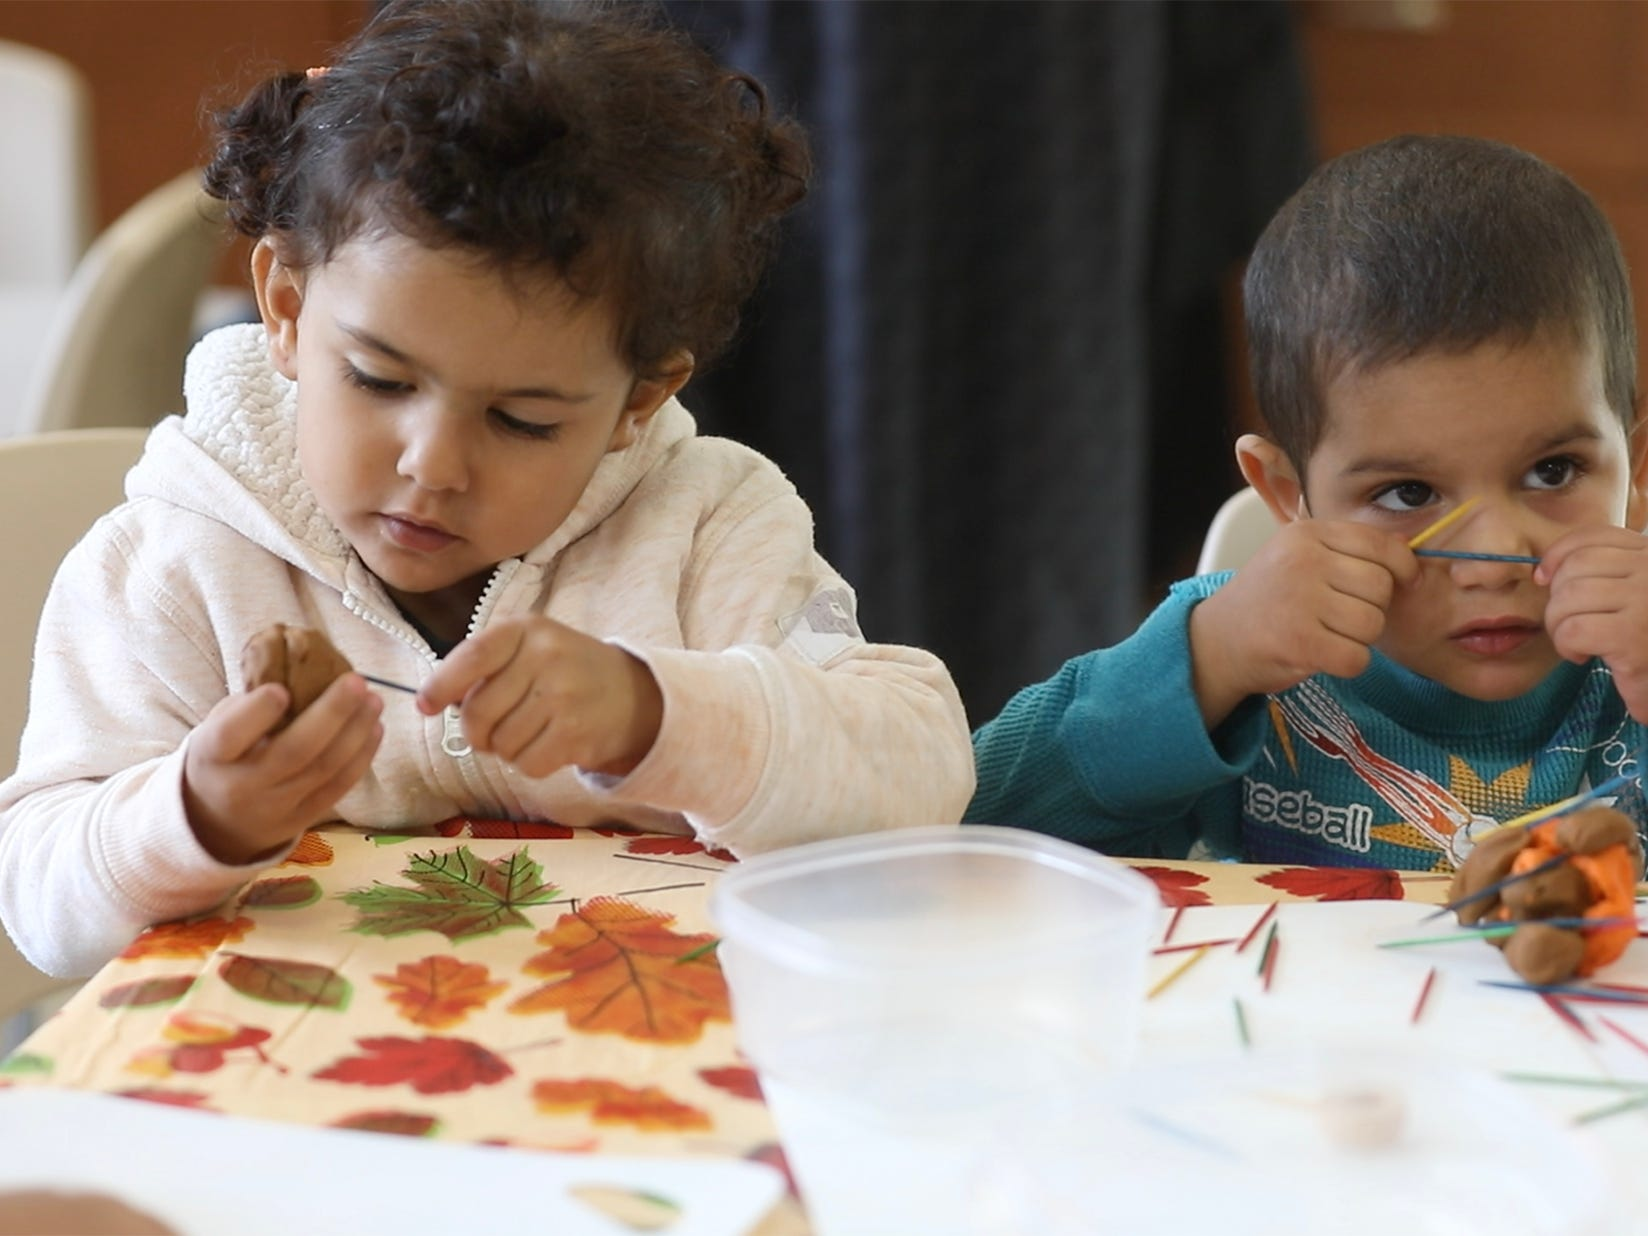 Rahaf Amossa and Souaud Fahed use toothpicks in their dough creation.